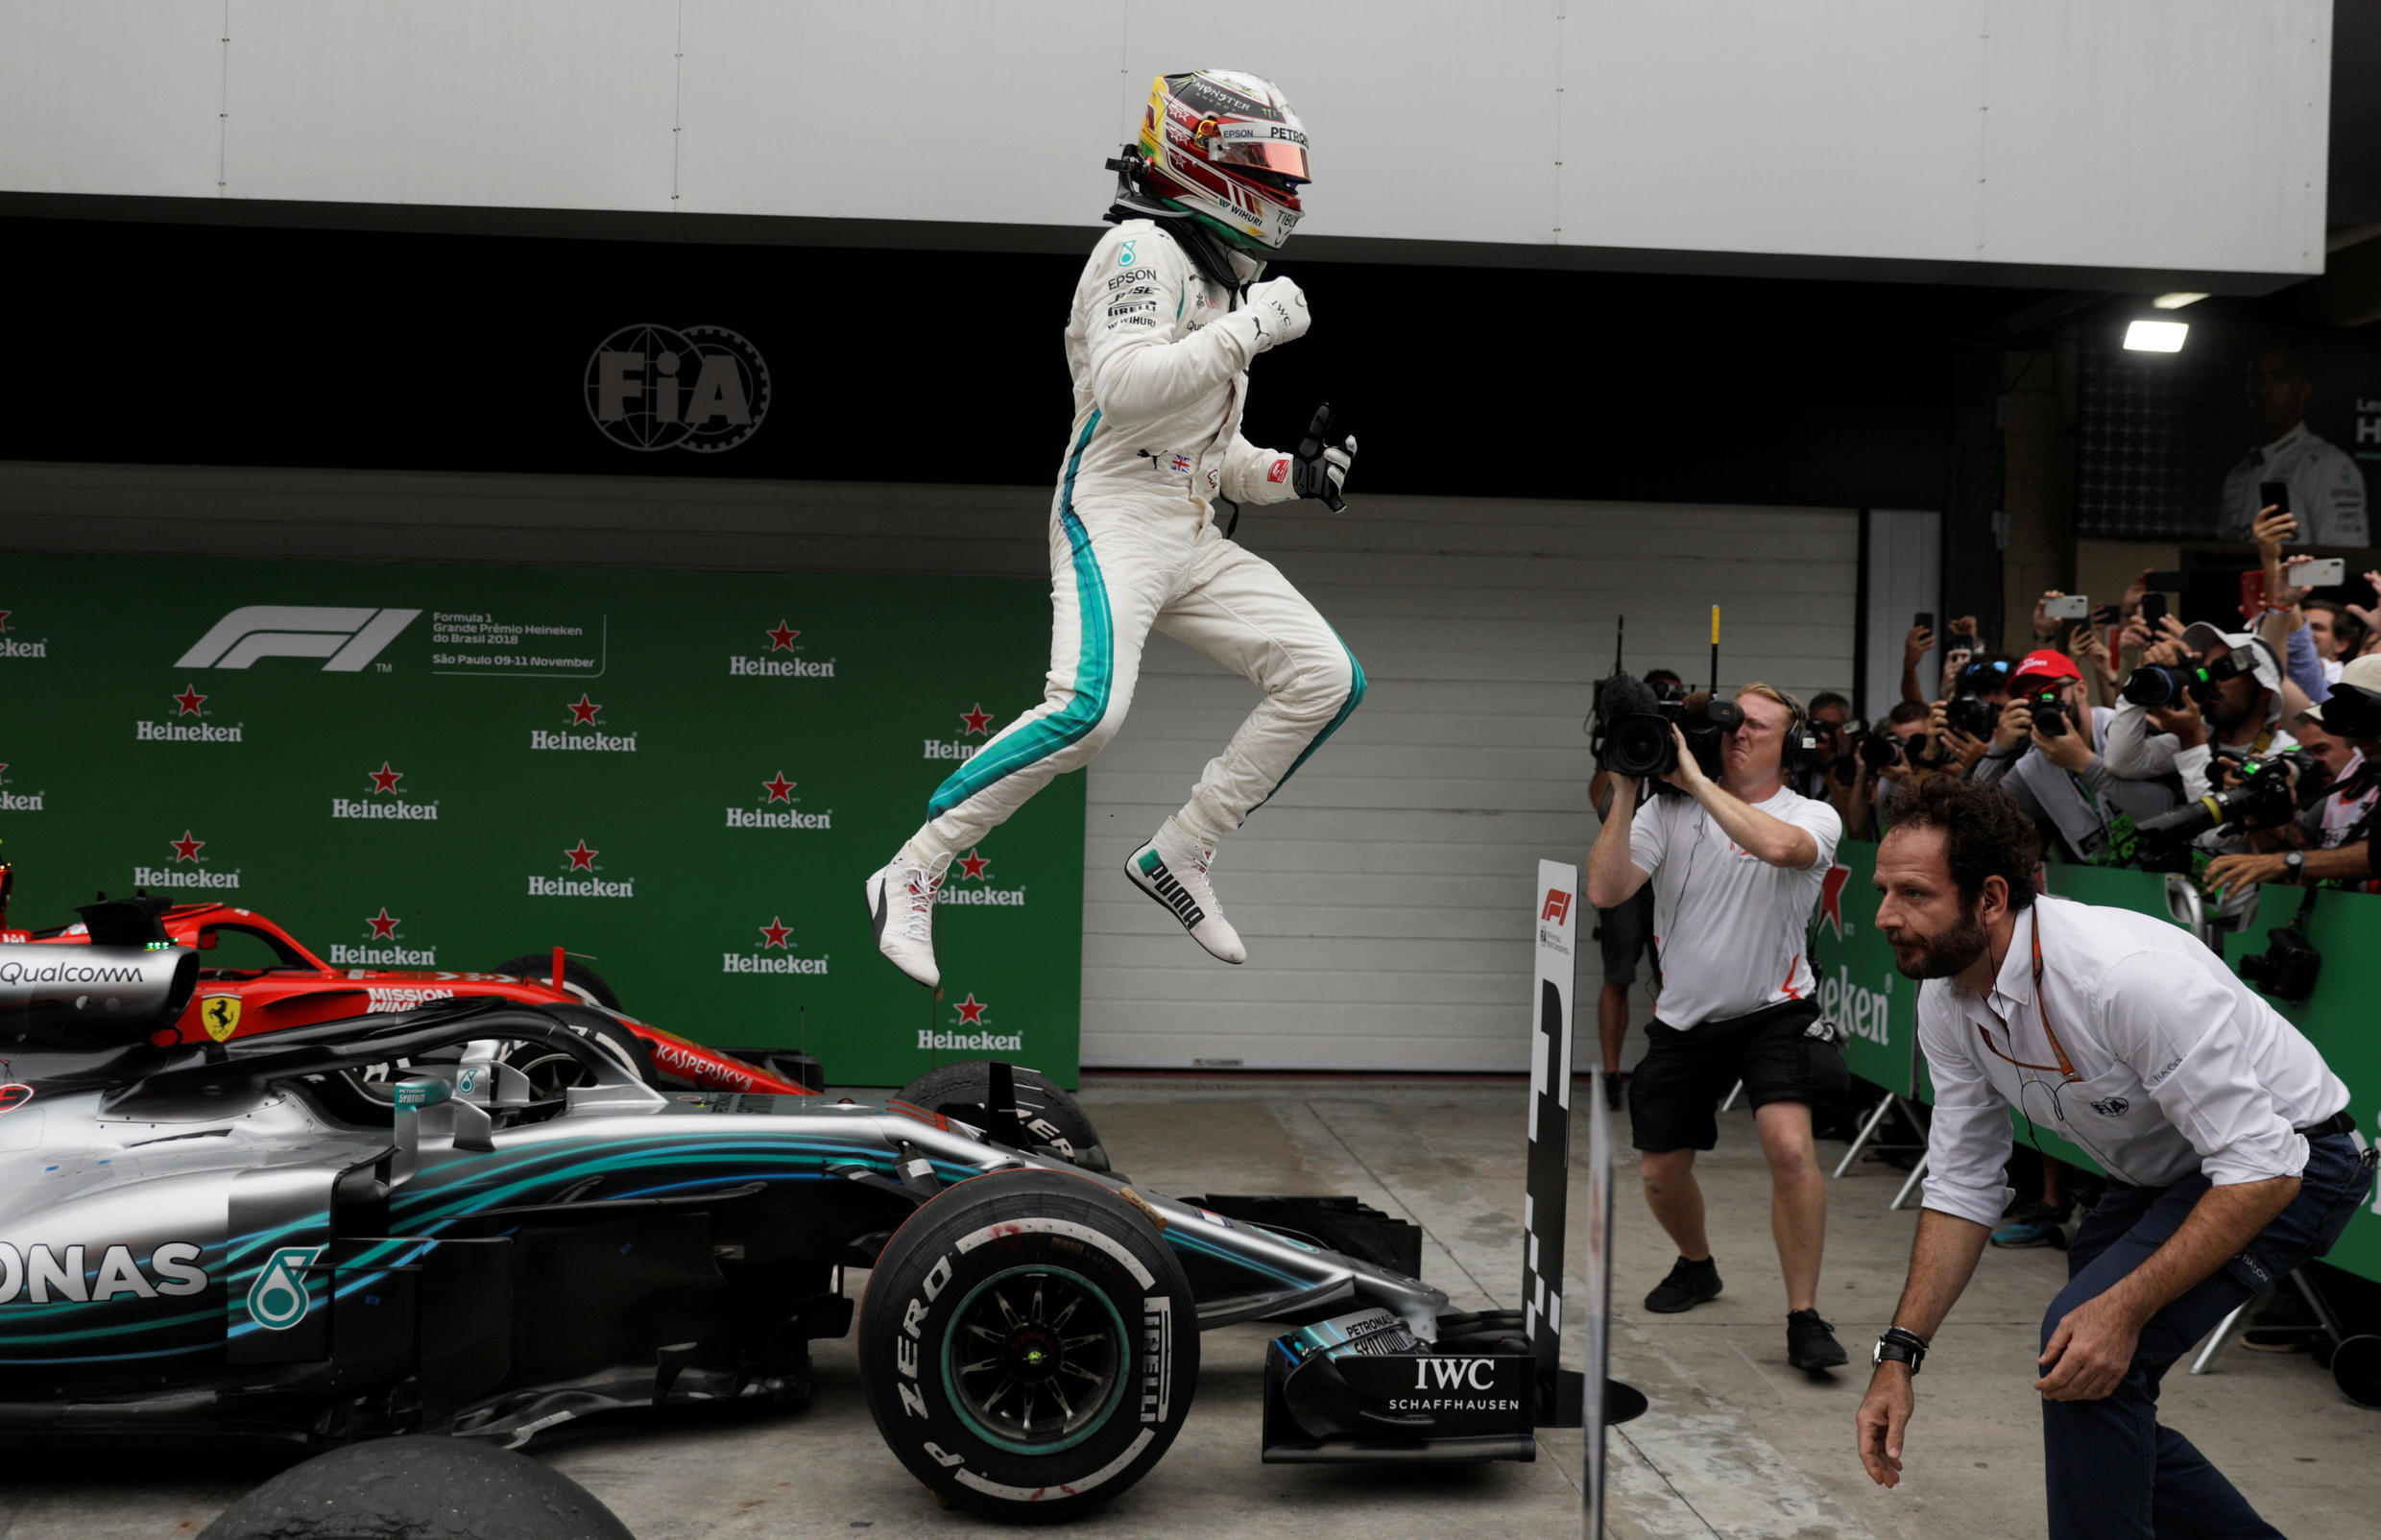 Mercedes' Lewis Hamilton celebrates with team members after winning the race.